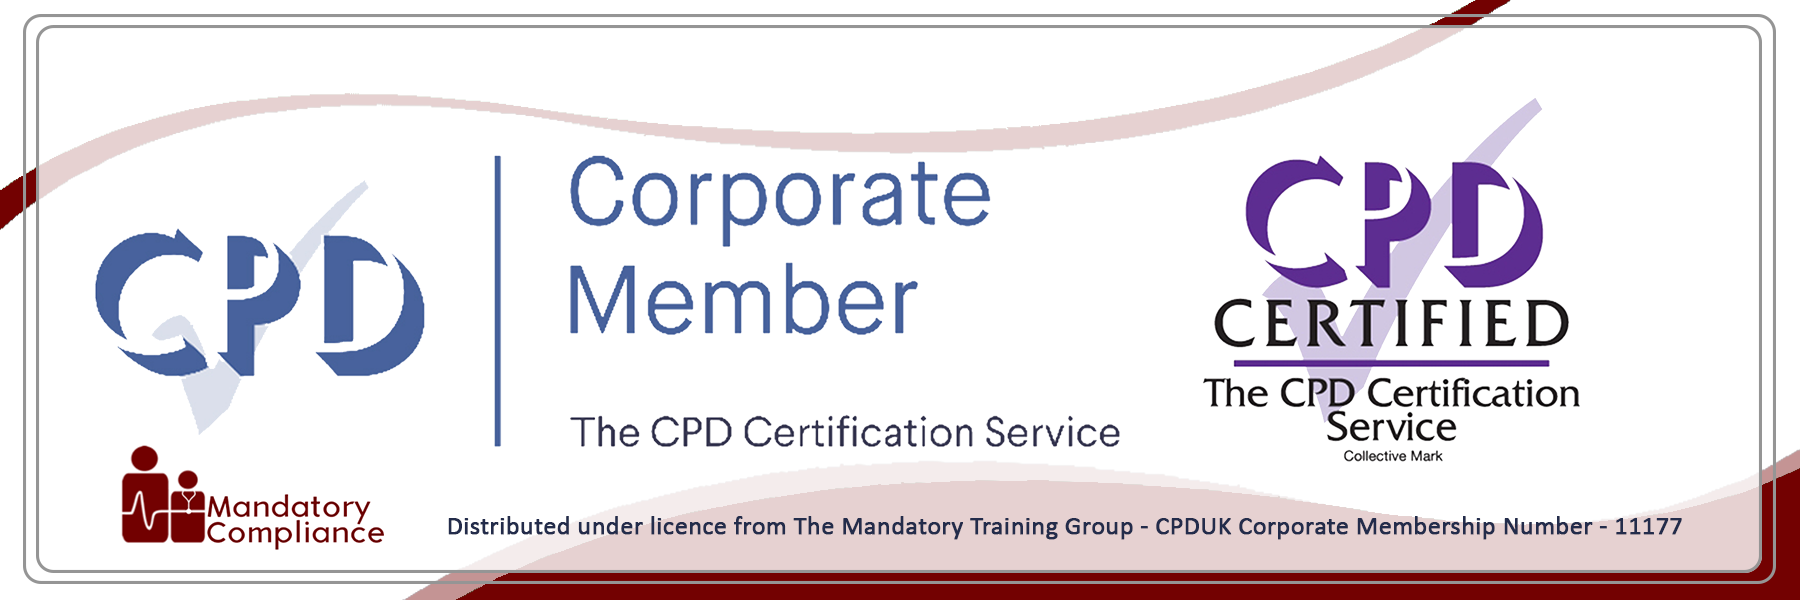 Increasing Your Happiness - Online Training Course - CPDUK Accredited - Mandatory Compliance UK -